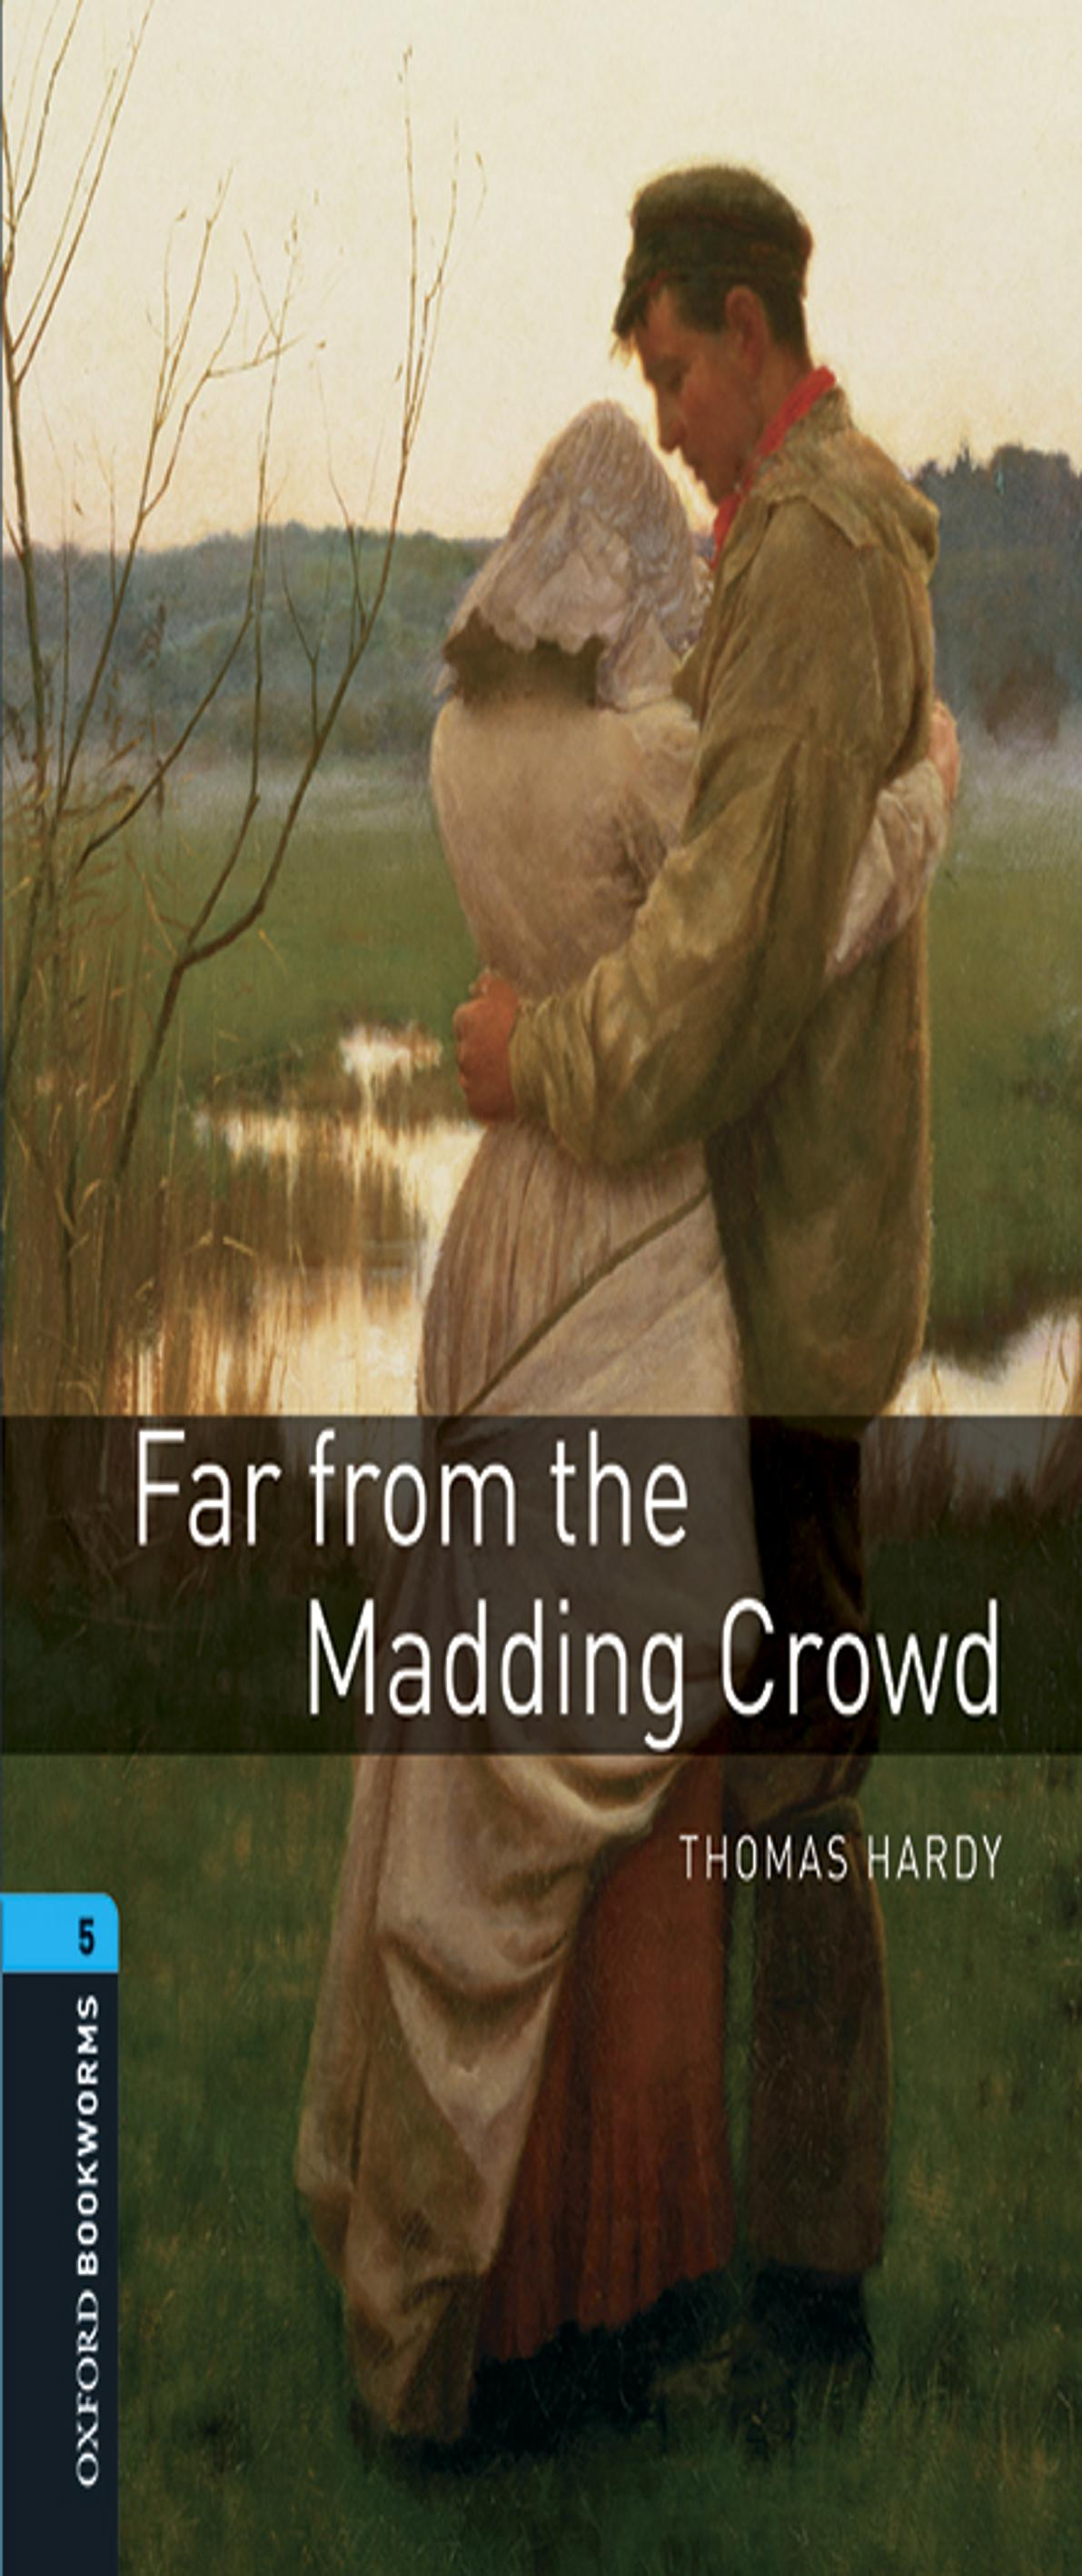 FAR FROM THE MADDING CROWD + Audio dowlnoad - OBL 5